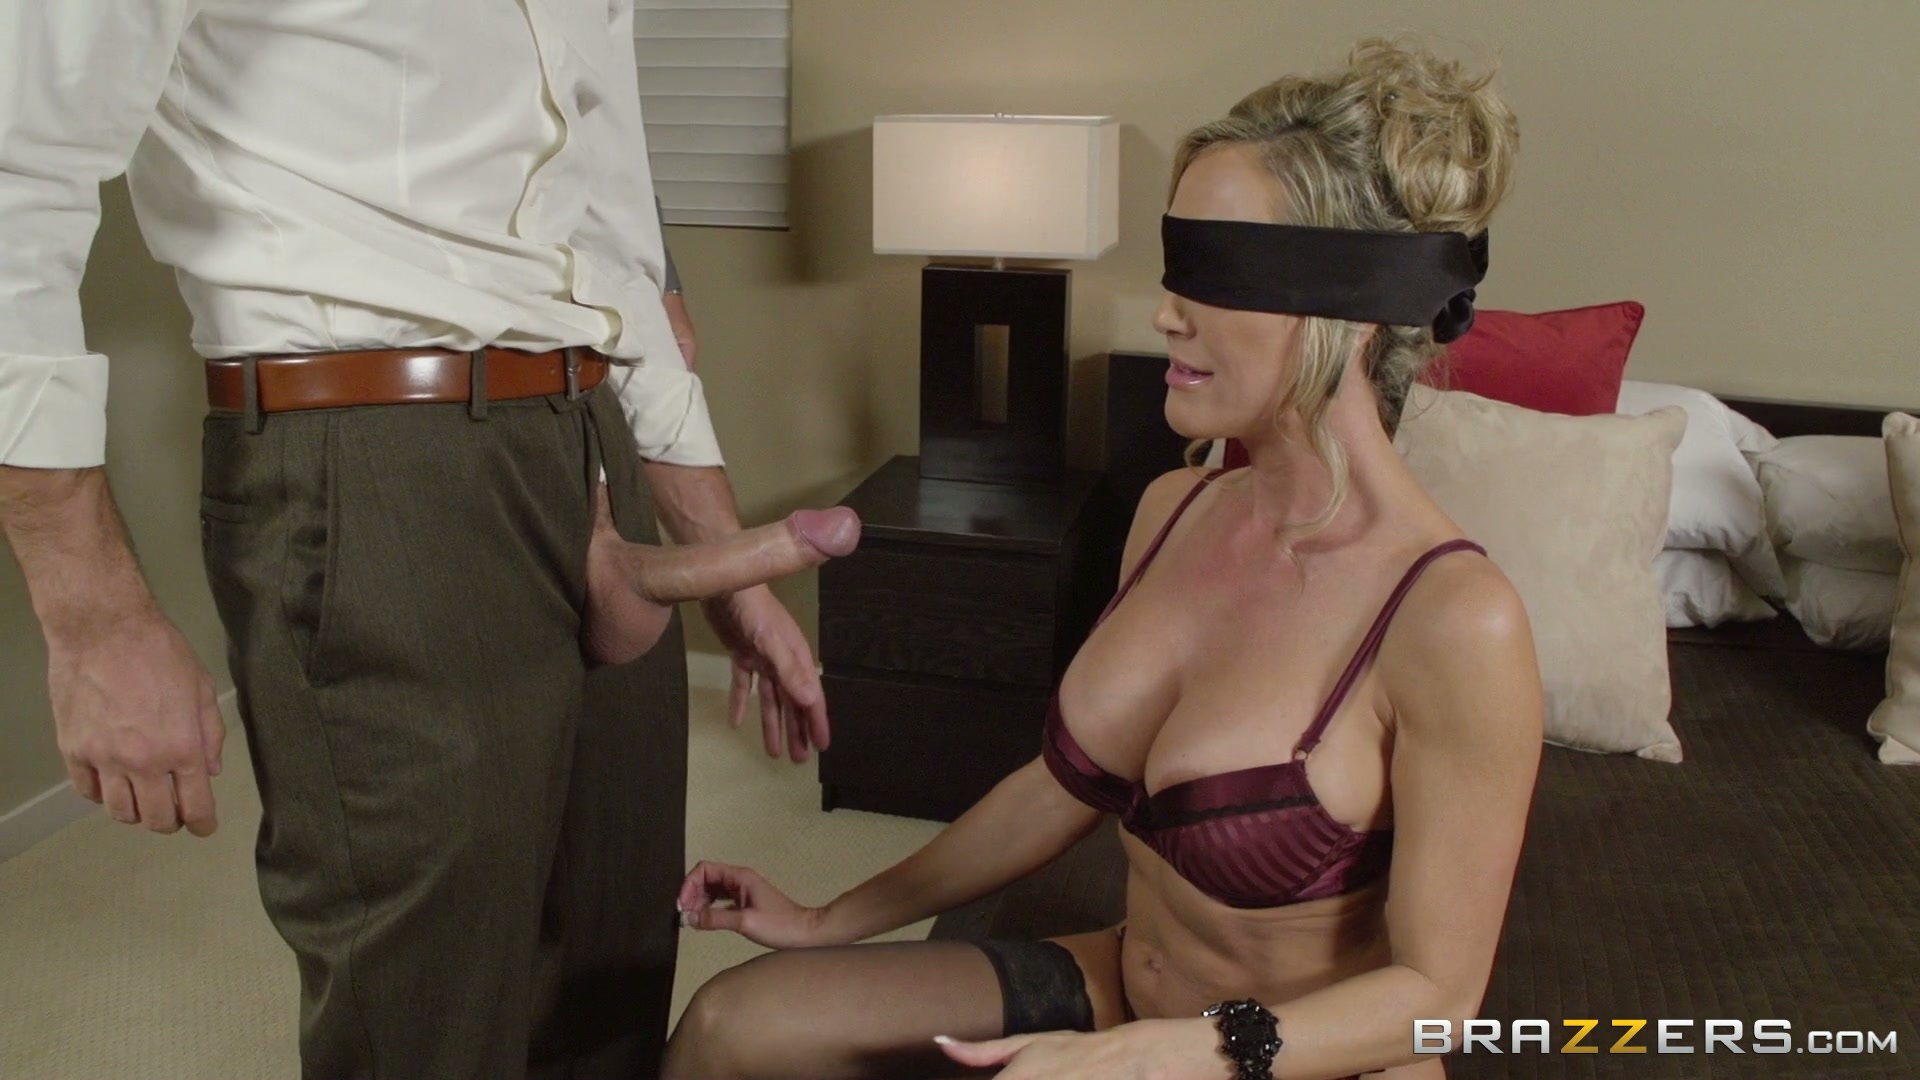 blindfold sex video